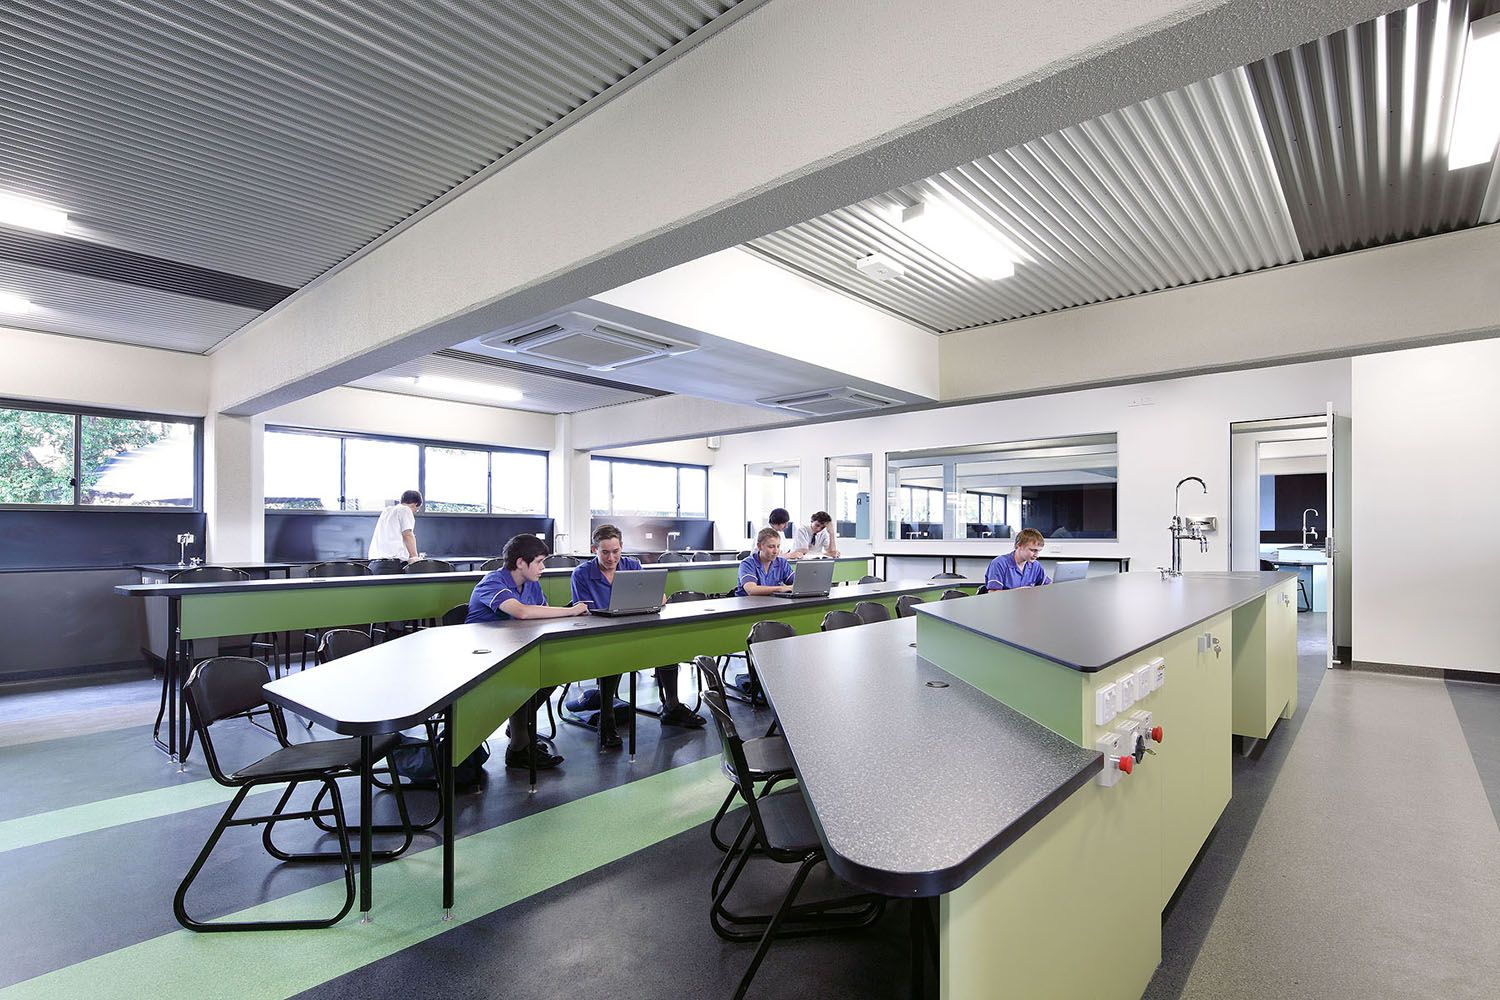 Classroom Design Architecture ~ St edmund s college science block architecture